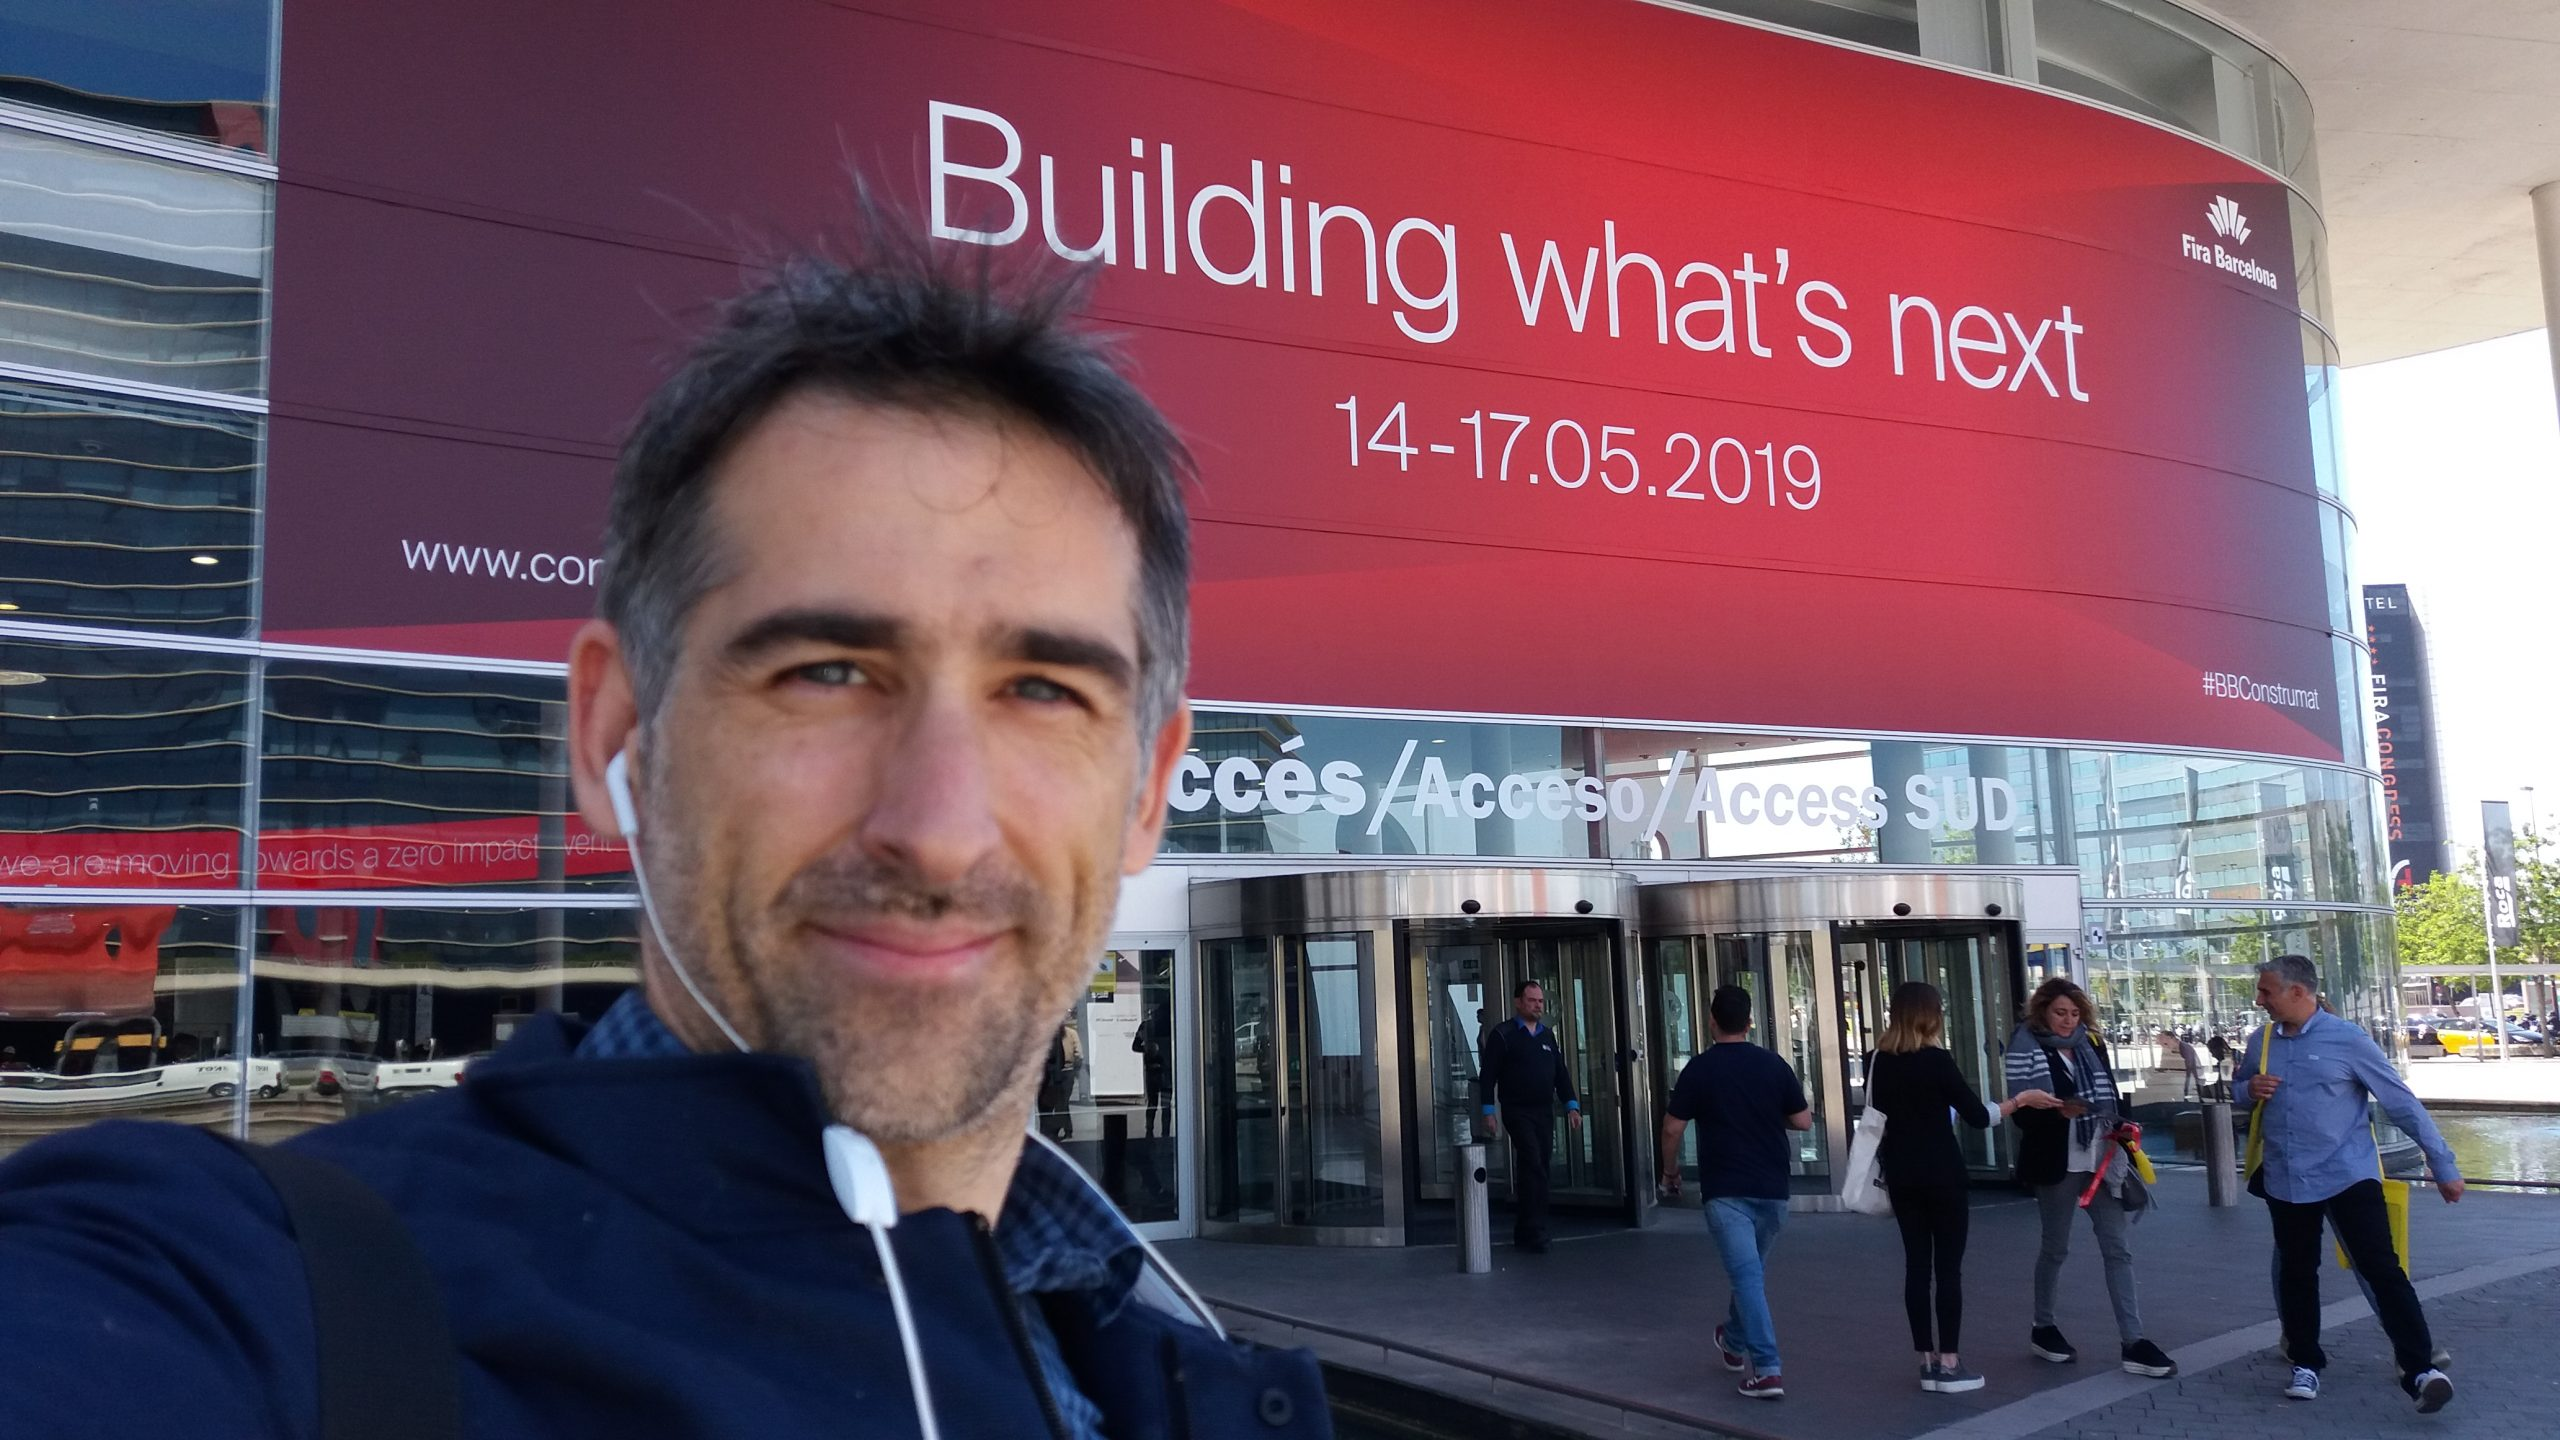 RBA Adnitt Acoustics at Construmat 2019